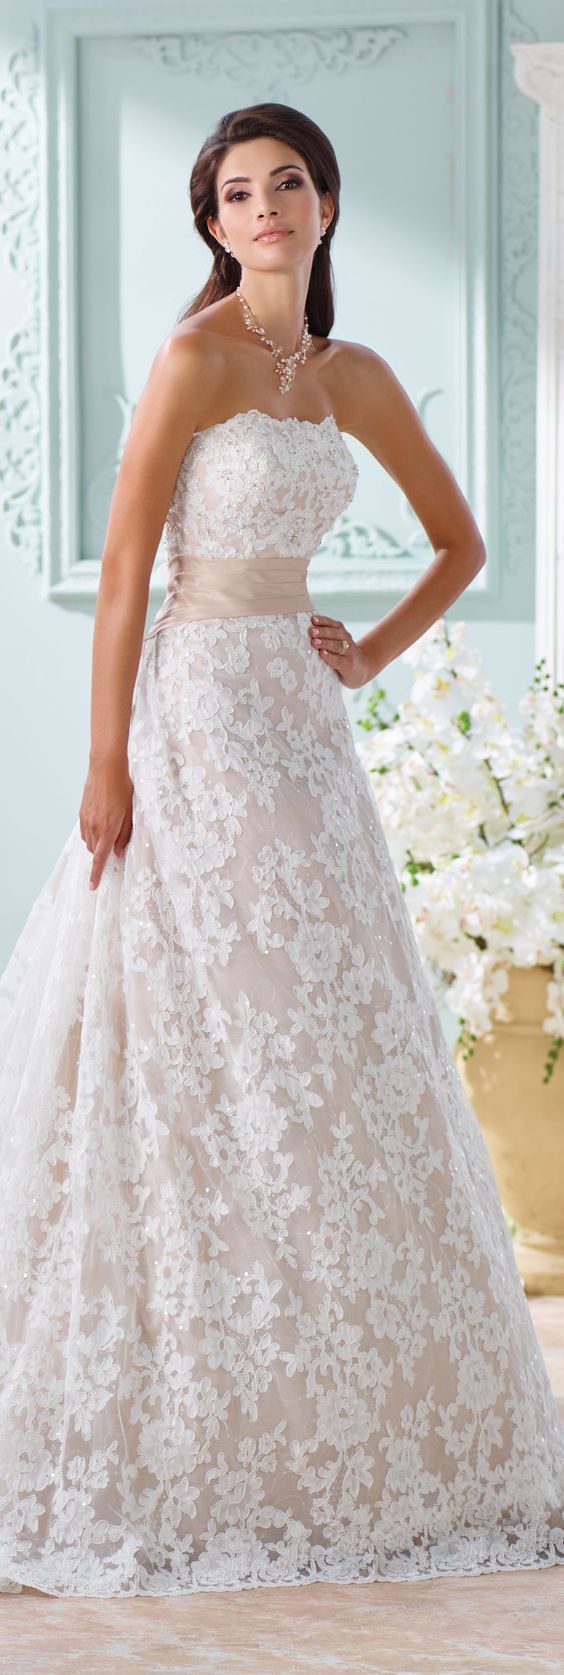 The David Tutera for Mon Cheri Spring 2016 Wedding Gown Collection - Style No. 116219 Yalene #laceweddingdress